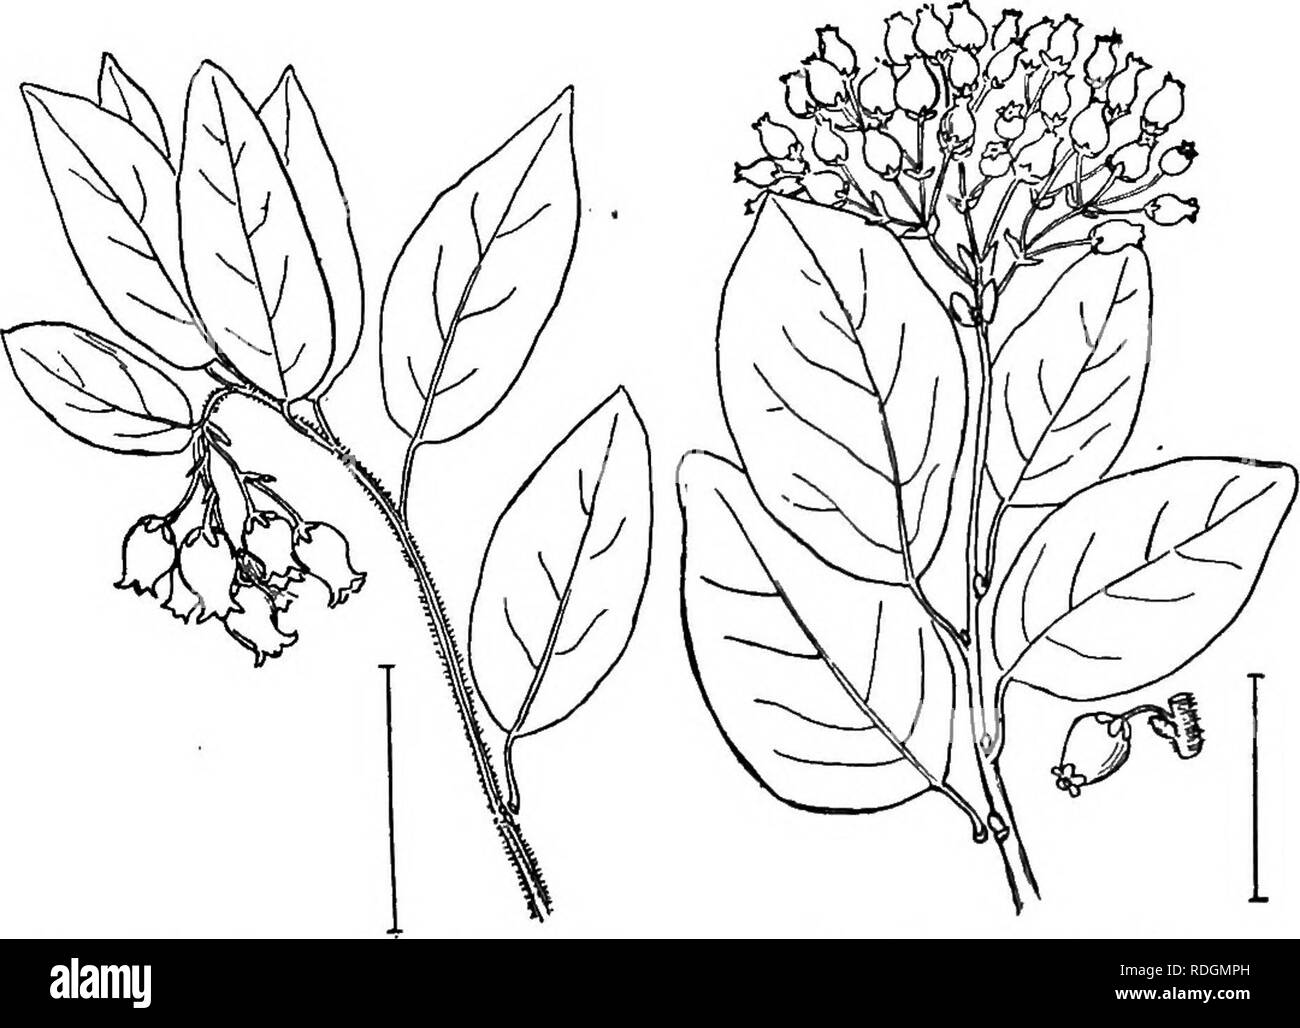 the 411 stock photos the 411 stock images page 9 alamy  ornamental shrubs of the united states hardy cultivated shrubs arctostaphylos